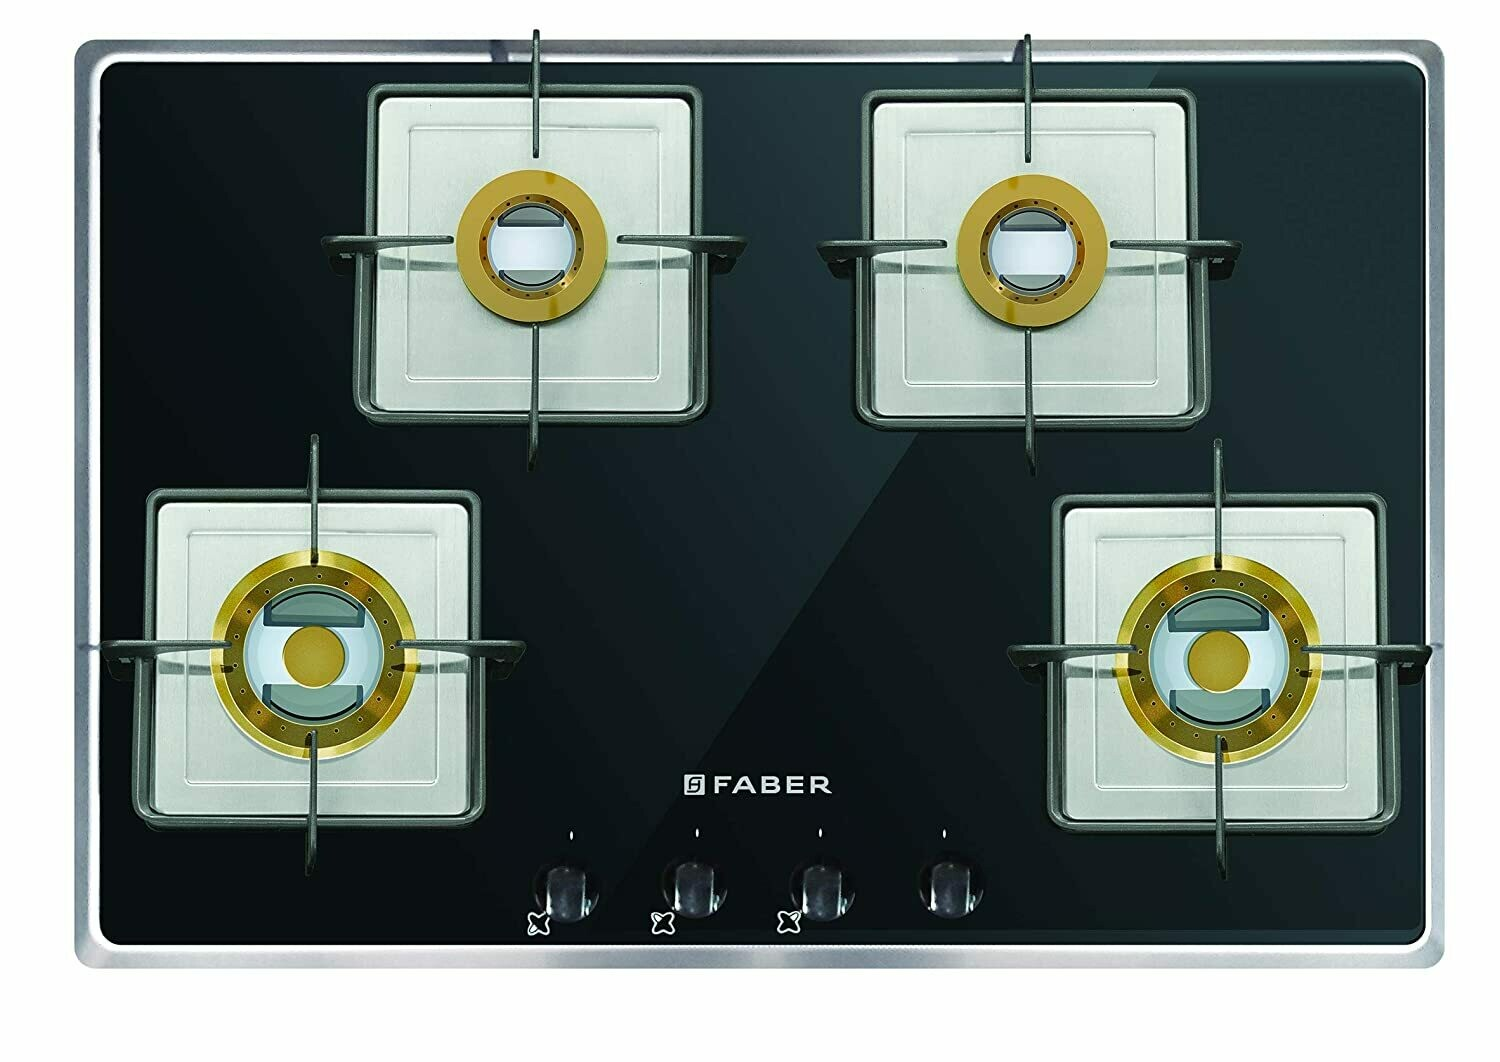 Faber Glass, Stainless Steel Frame Hob 4 Burner, Auto Electric Ignition, Glass Top (Fusion 724 CRX BR CI) Black, Silver